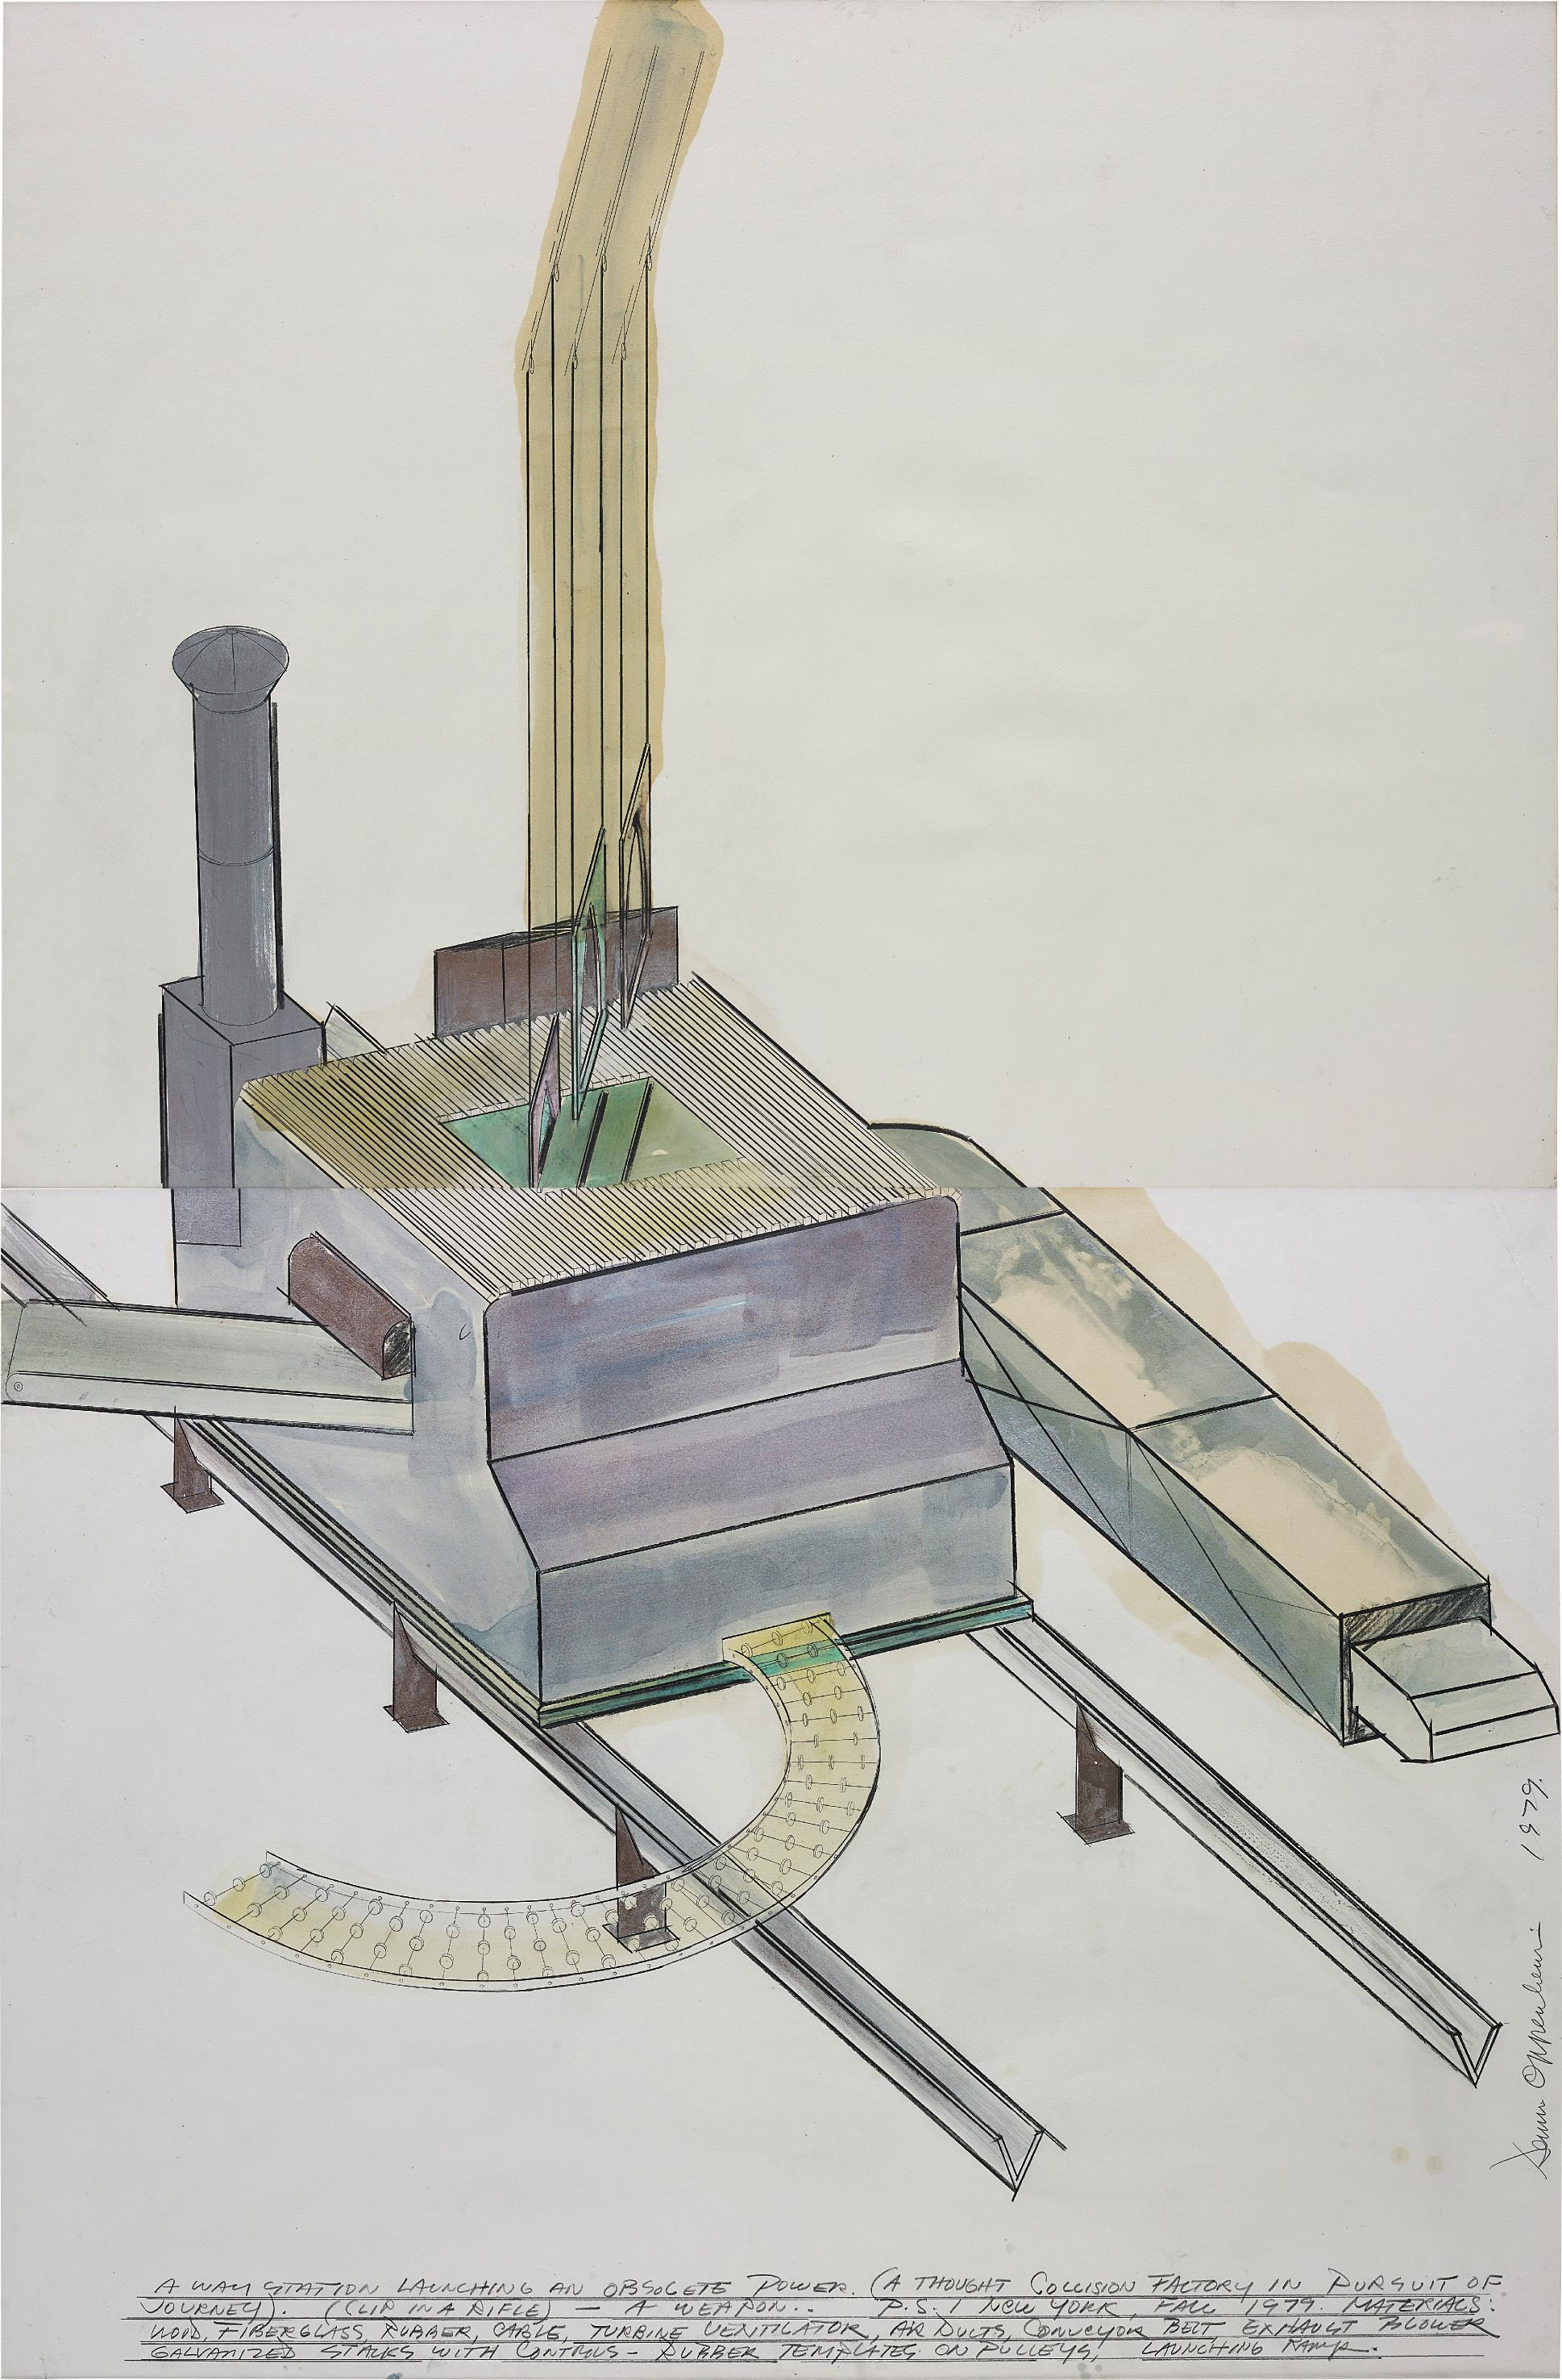 Dennis Oppenheim-A Way Station Launching an Obsolete Power (A Thought Collision Factory in Pursuit of a Journey) (A Clip in a Rifle - a Weapon)-1979